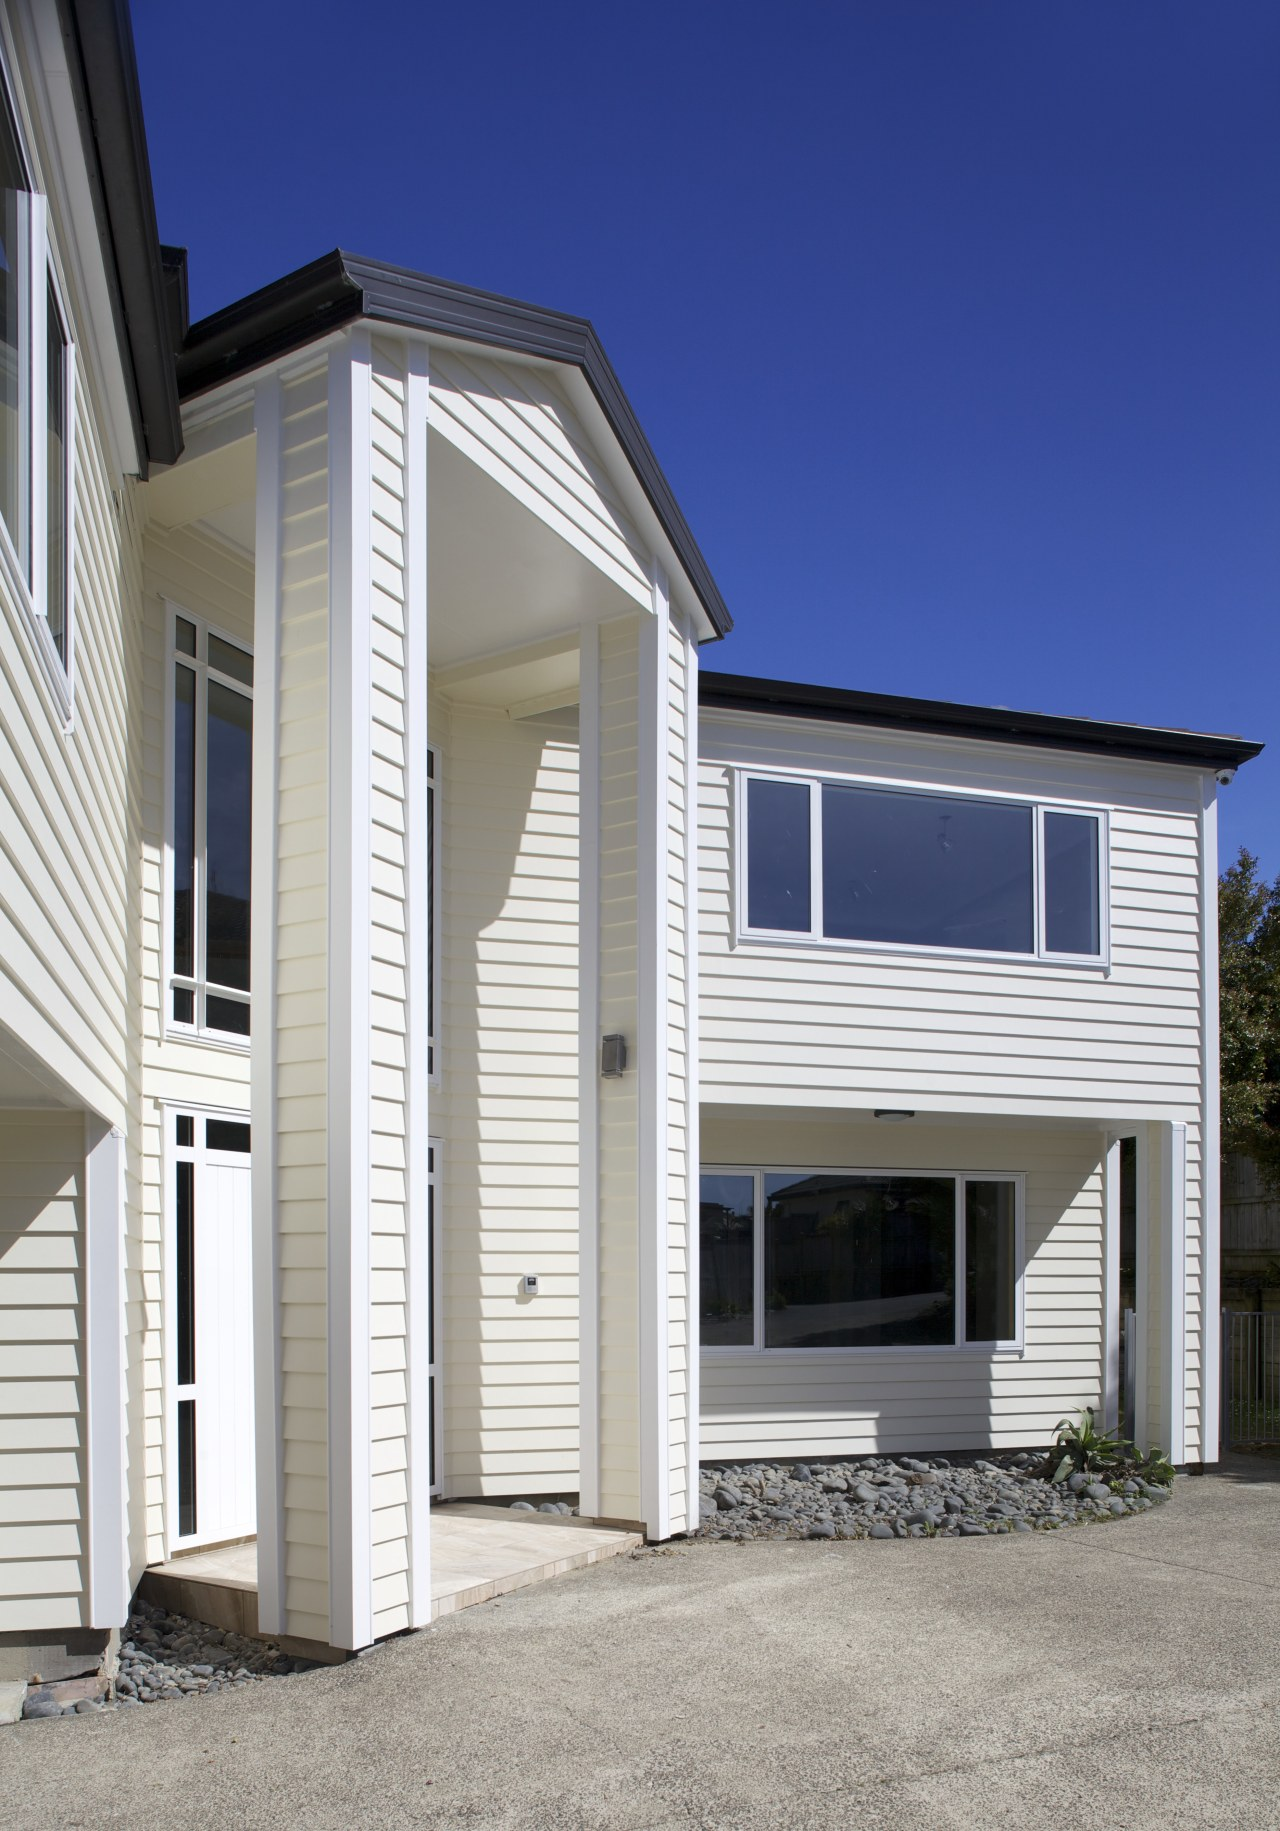 Namu Construction remodelled this expansive home with James architecture, building, elevation, facade, home, house, property, real estate, residential area, siding, window, gray, blue